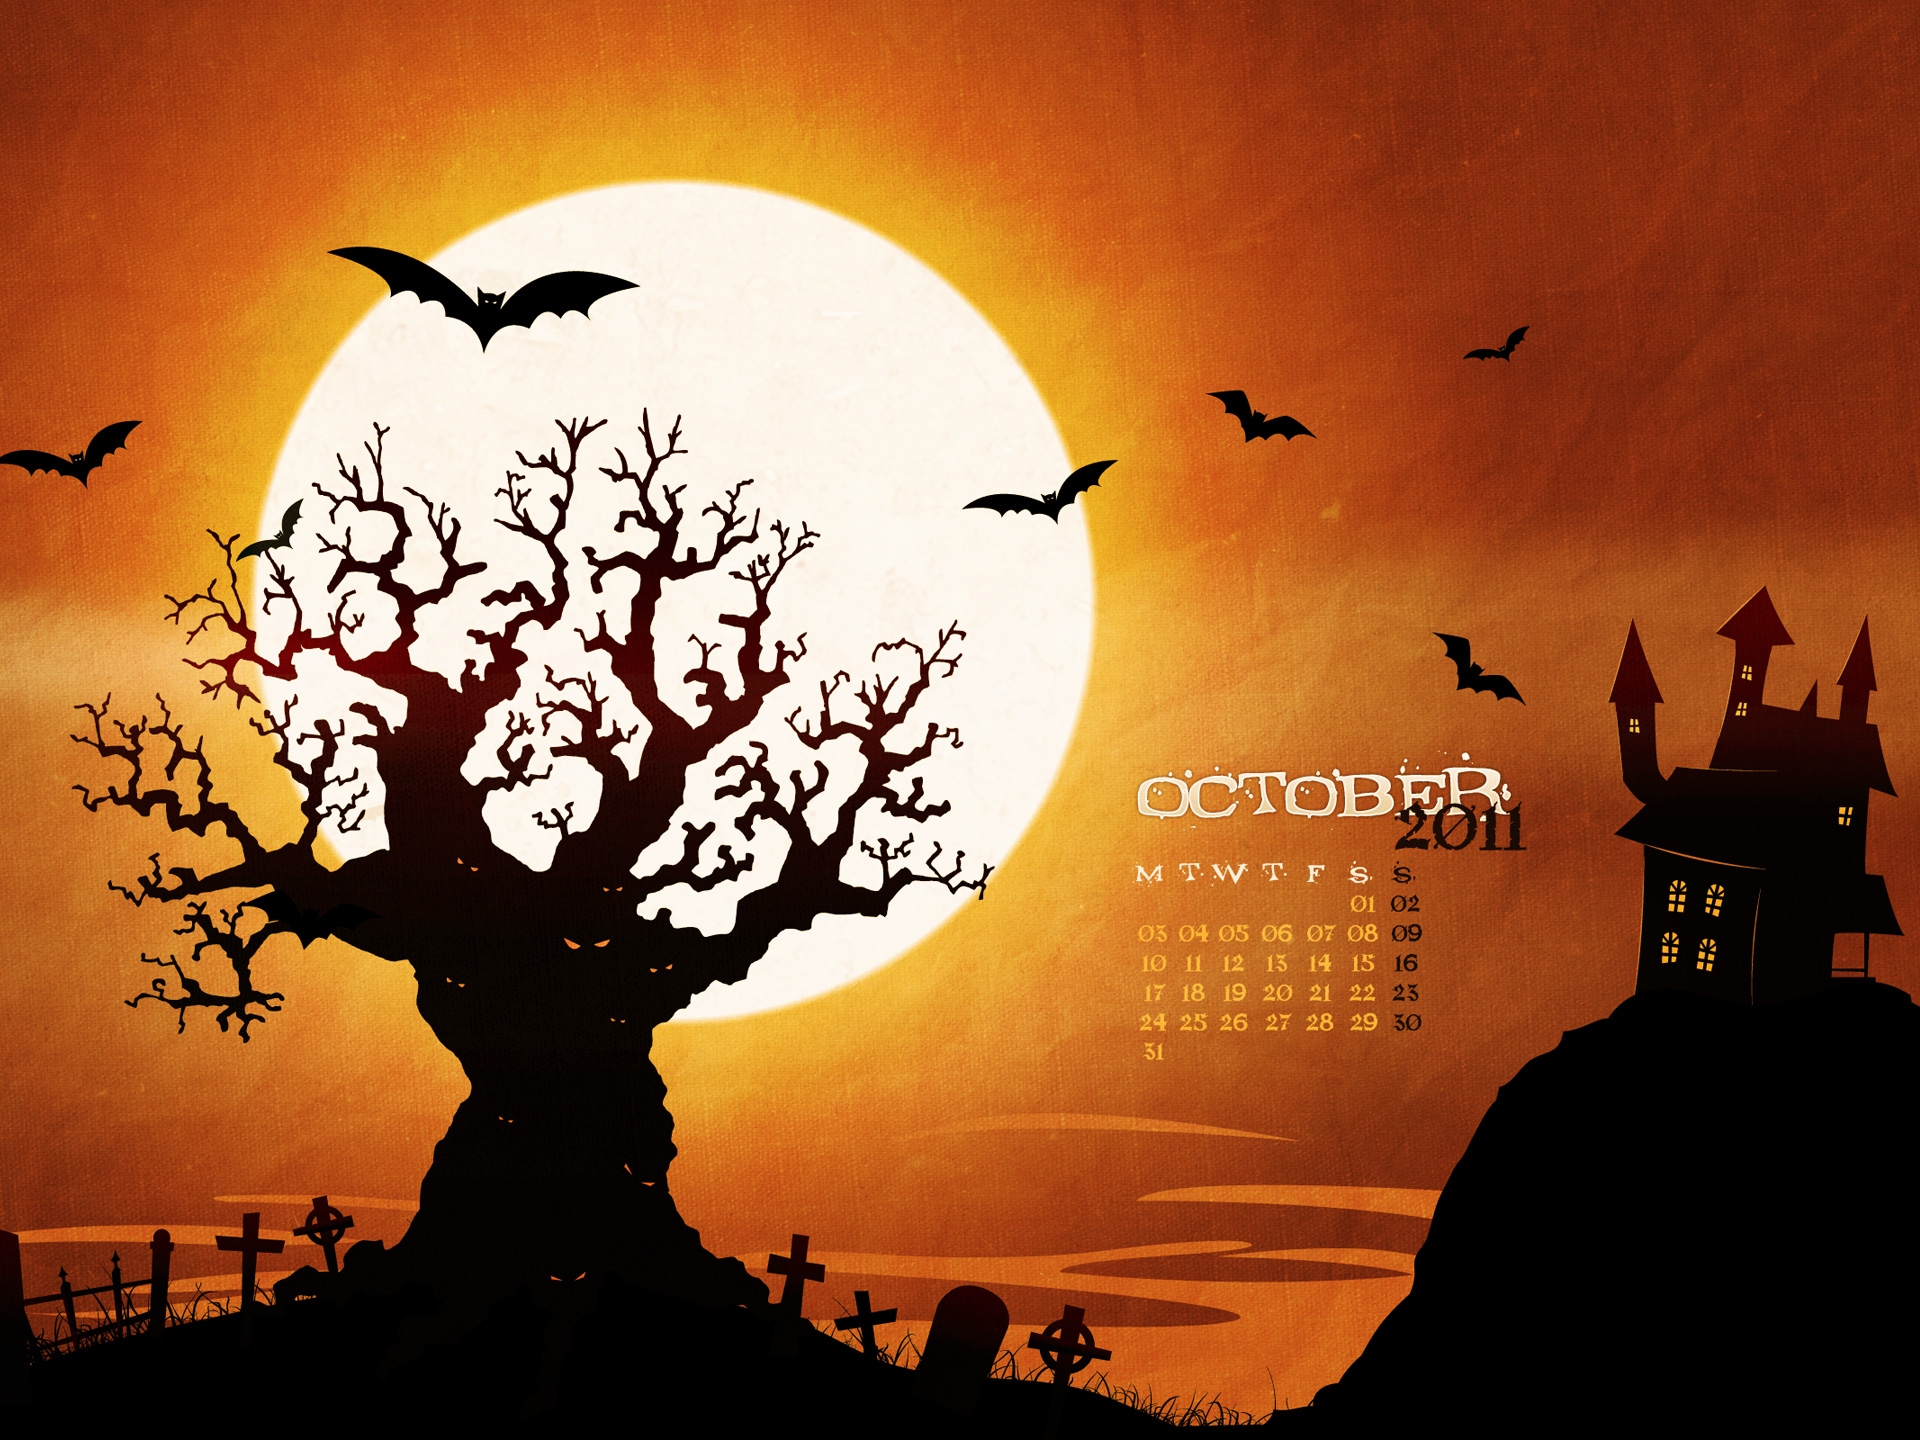 desktop wallpaper calendars october 2012 smashing magazine